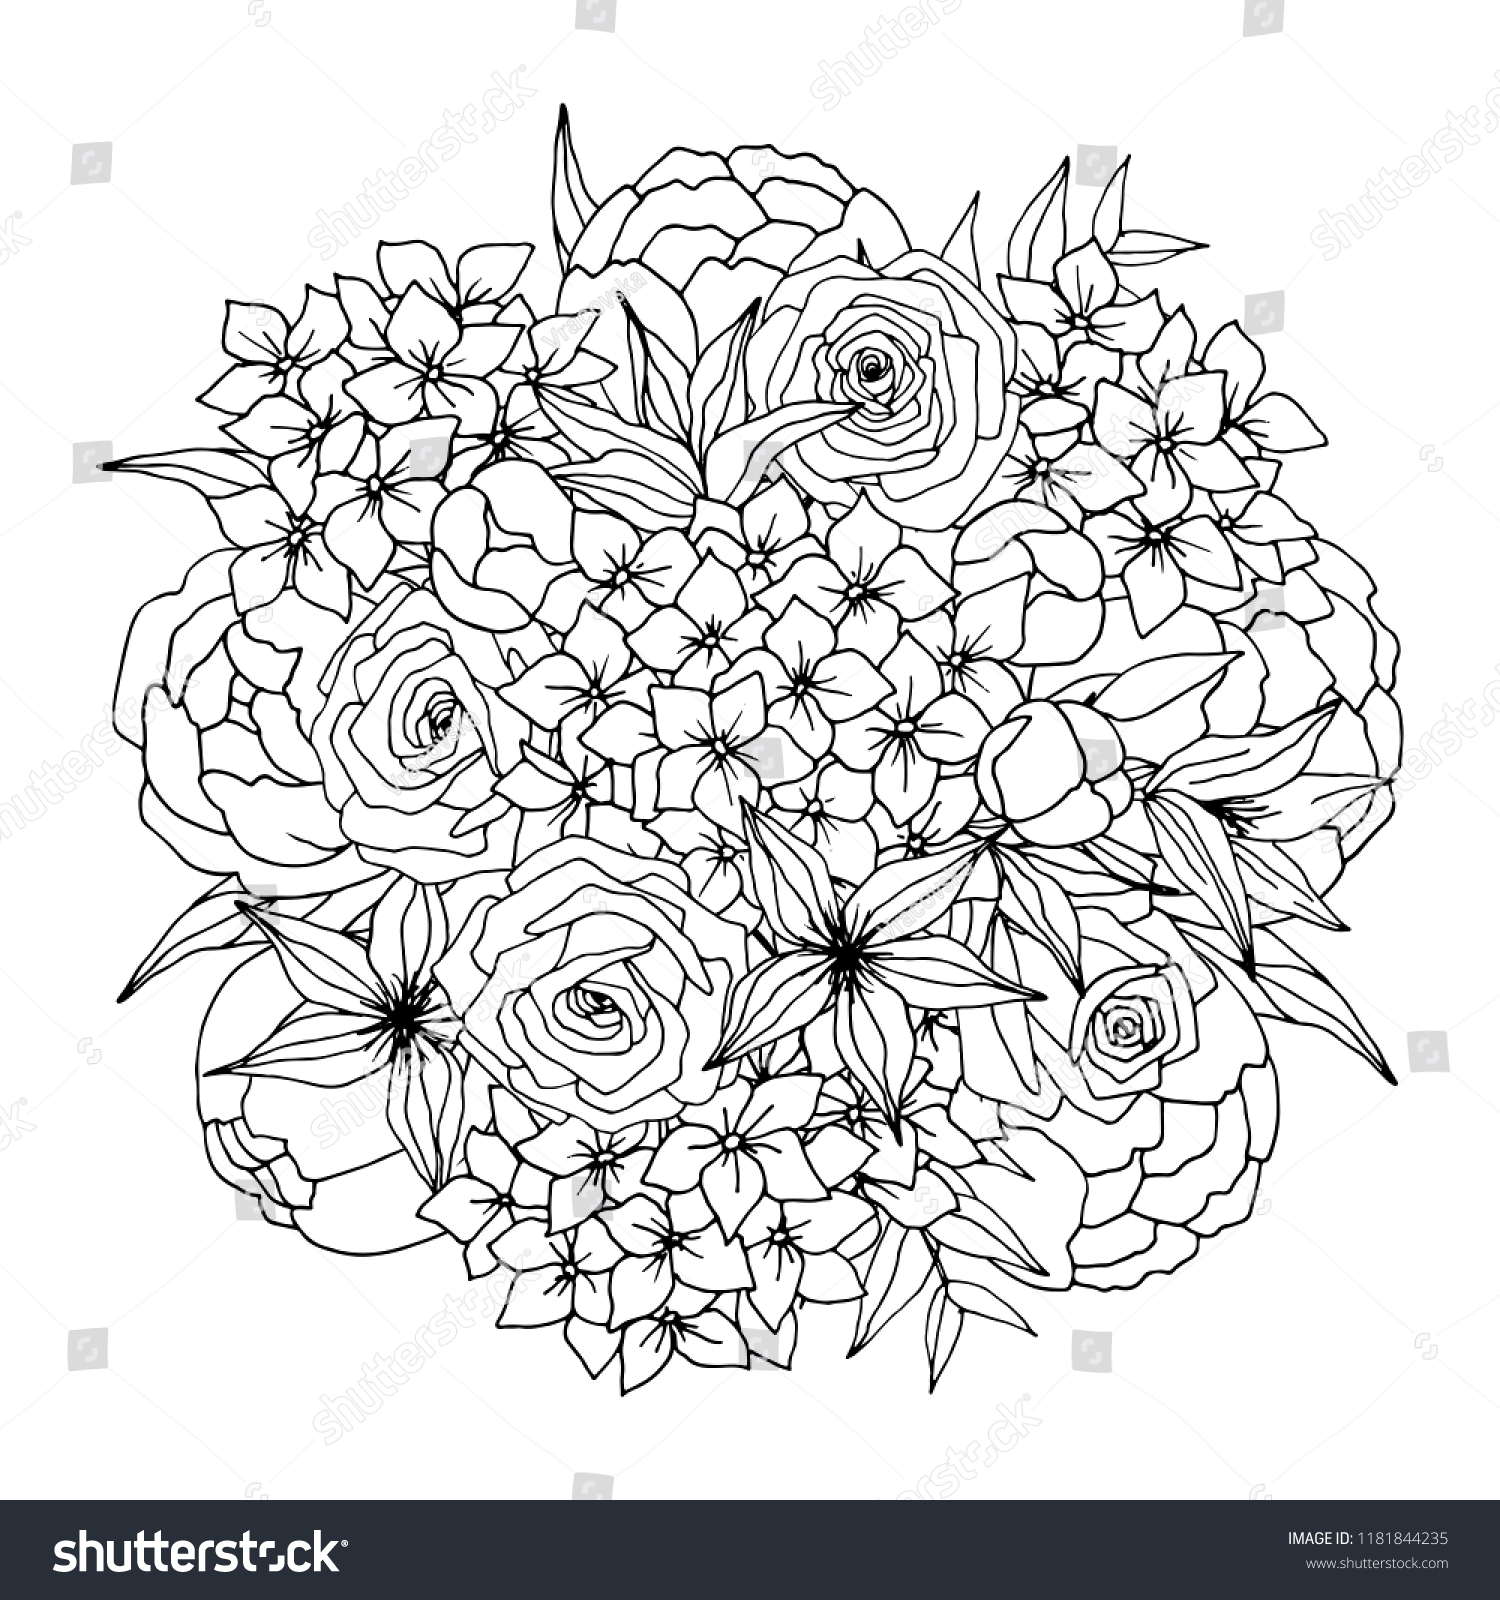 Fantasy flowers coloring page Royalty Free Vector Image | 1600x1500